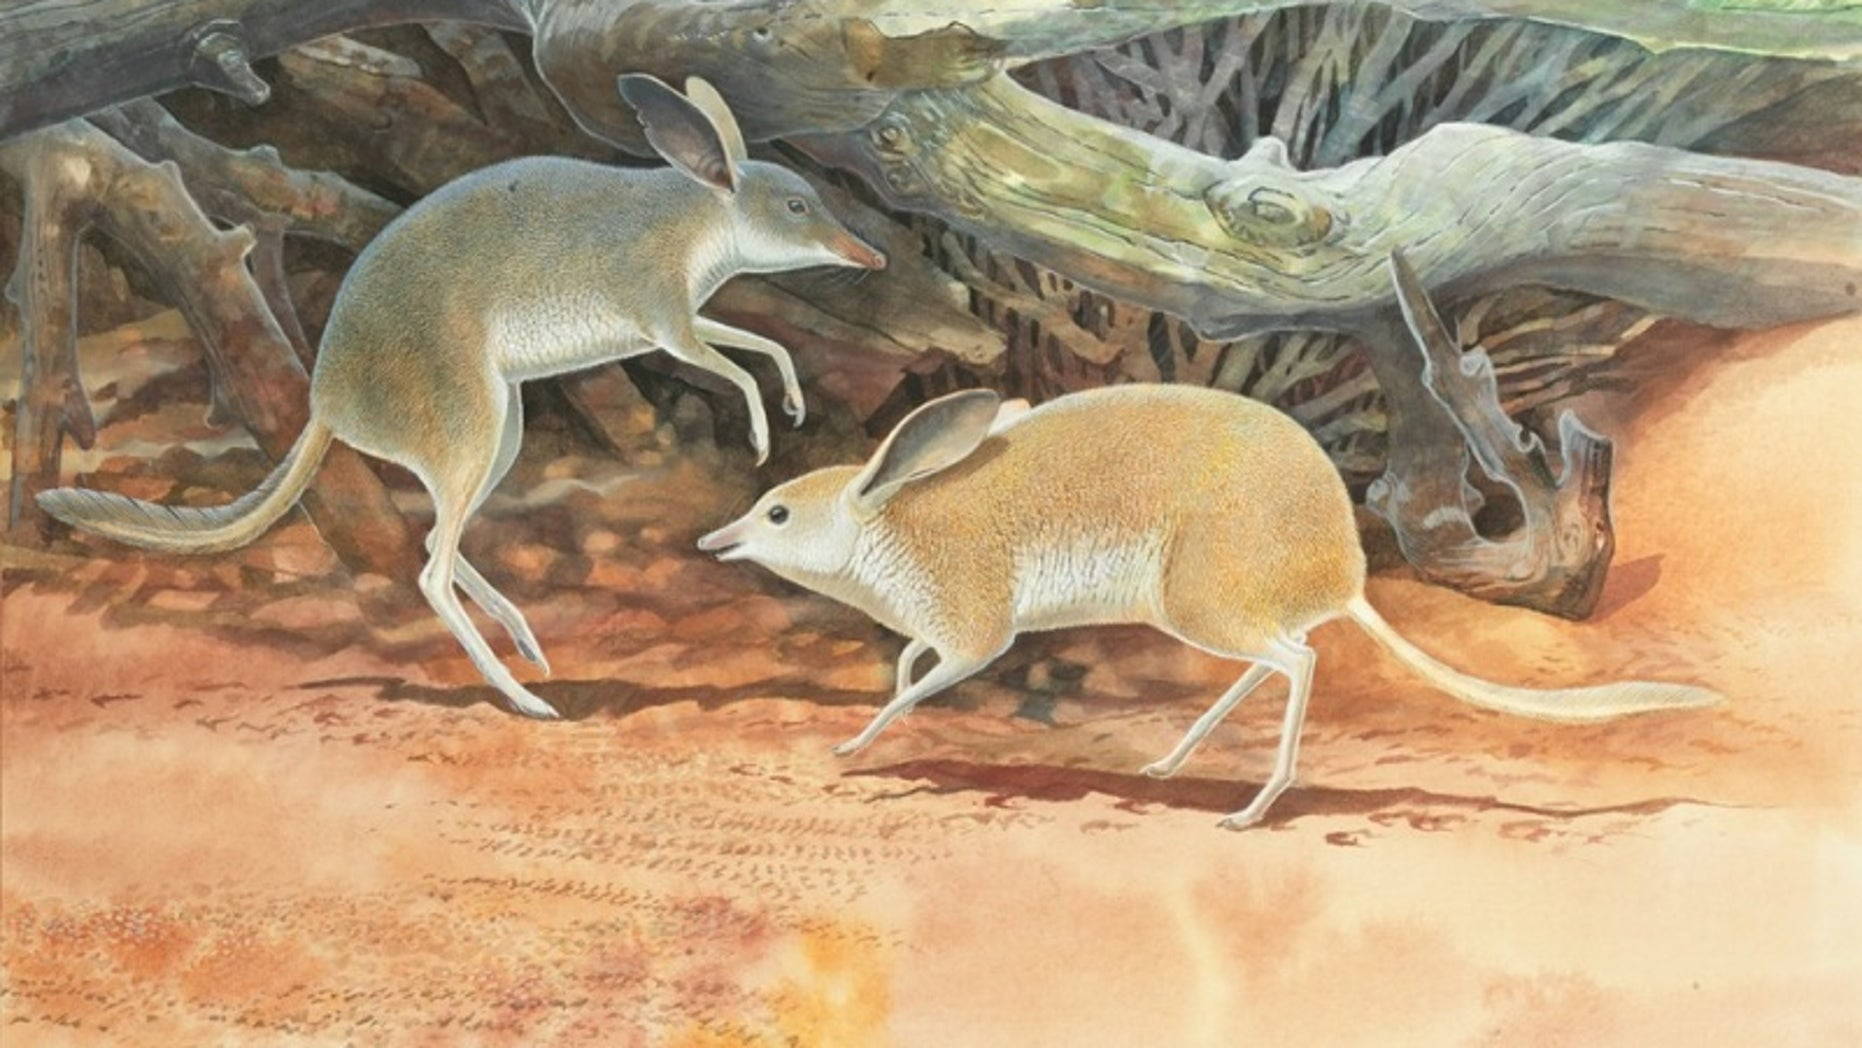 Two <em>Chaeropus yirratji</em>, a newly-described species of pig-footed bandicoot, pitter-pattered around Australia on their asymmetrical legs.